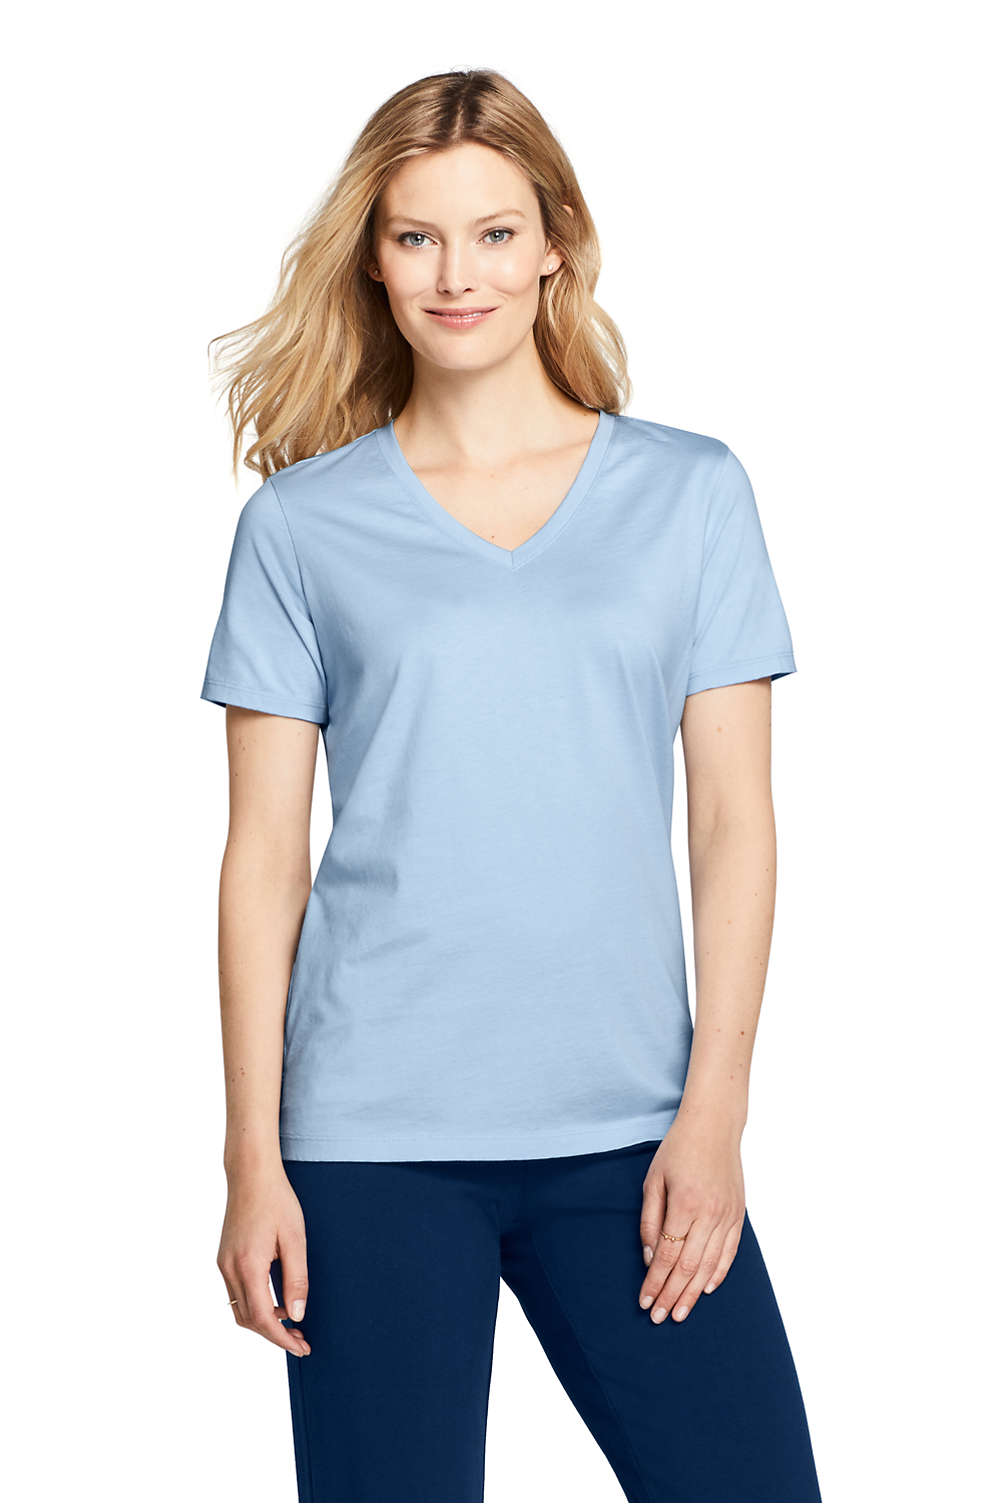 6e925c0404a2 Women's Relaxed Supima Cotton Short Sleeve V-Neck T-Shirt from Lands' End